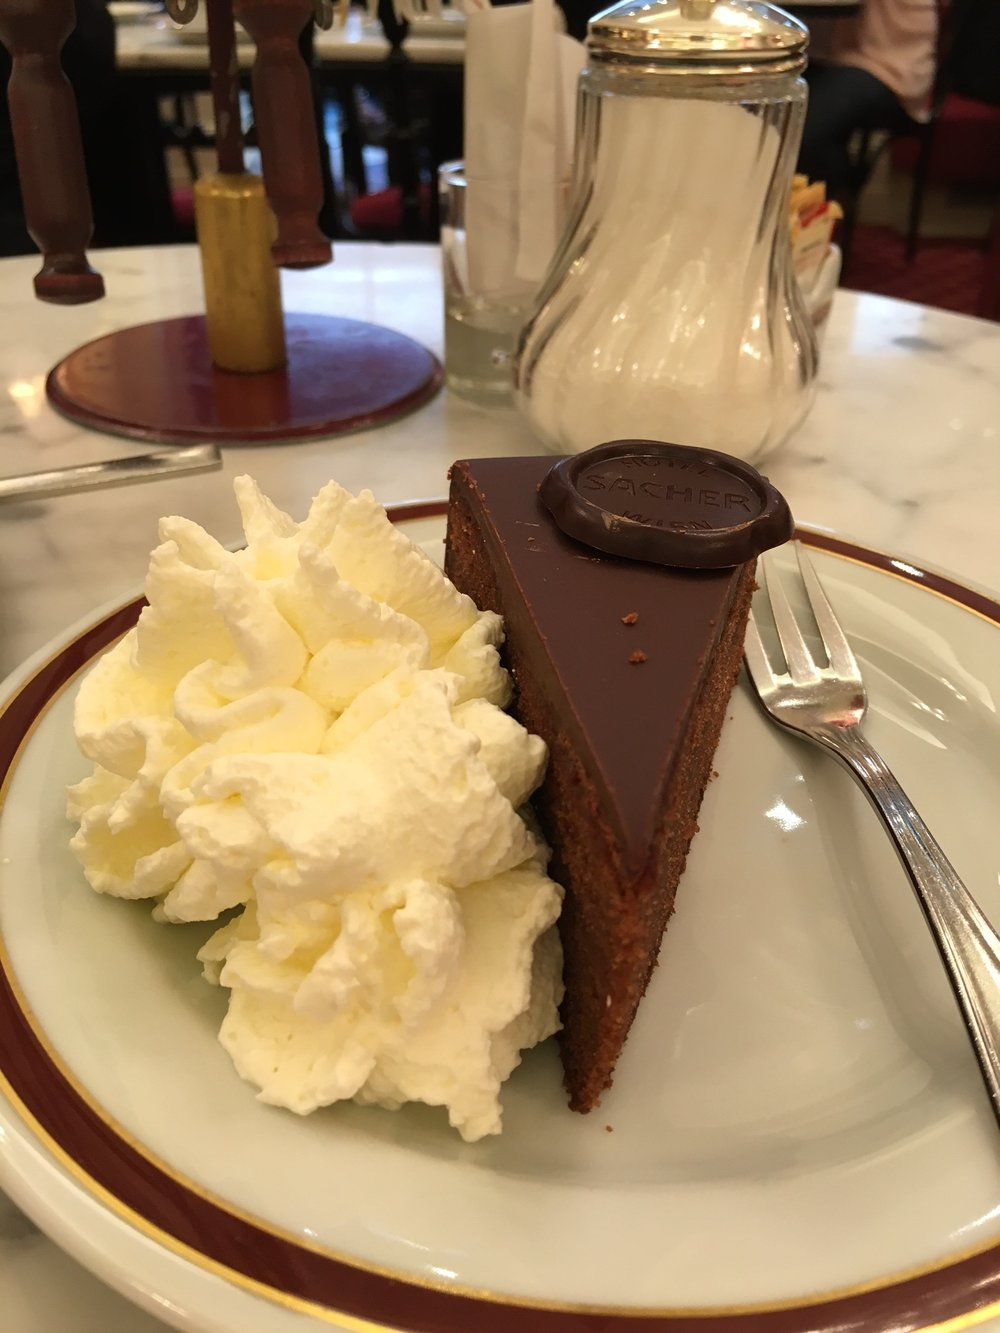 My favorite cake in the world - Original Sacher-Torte in Vienna!